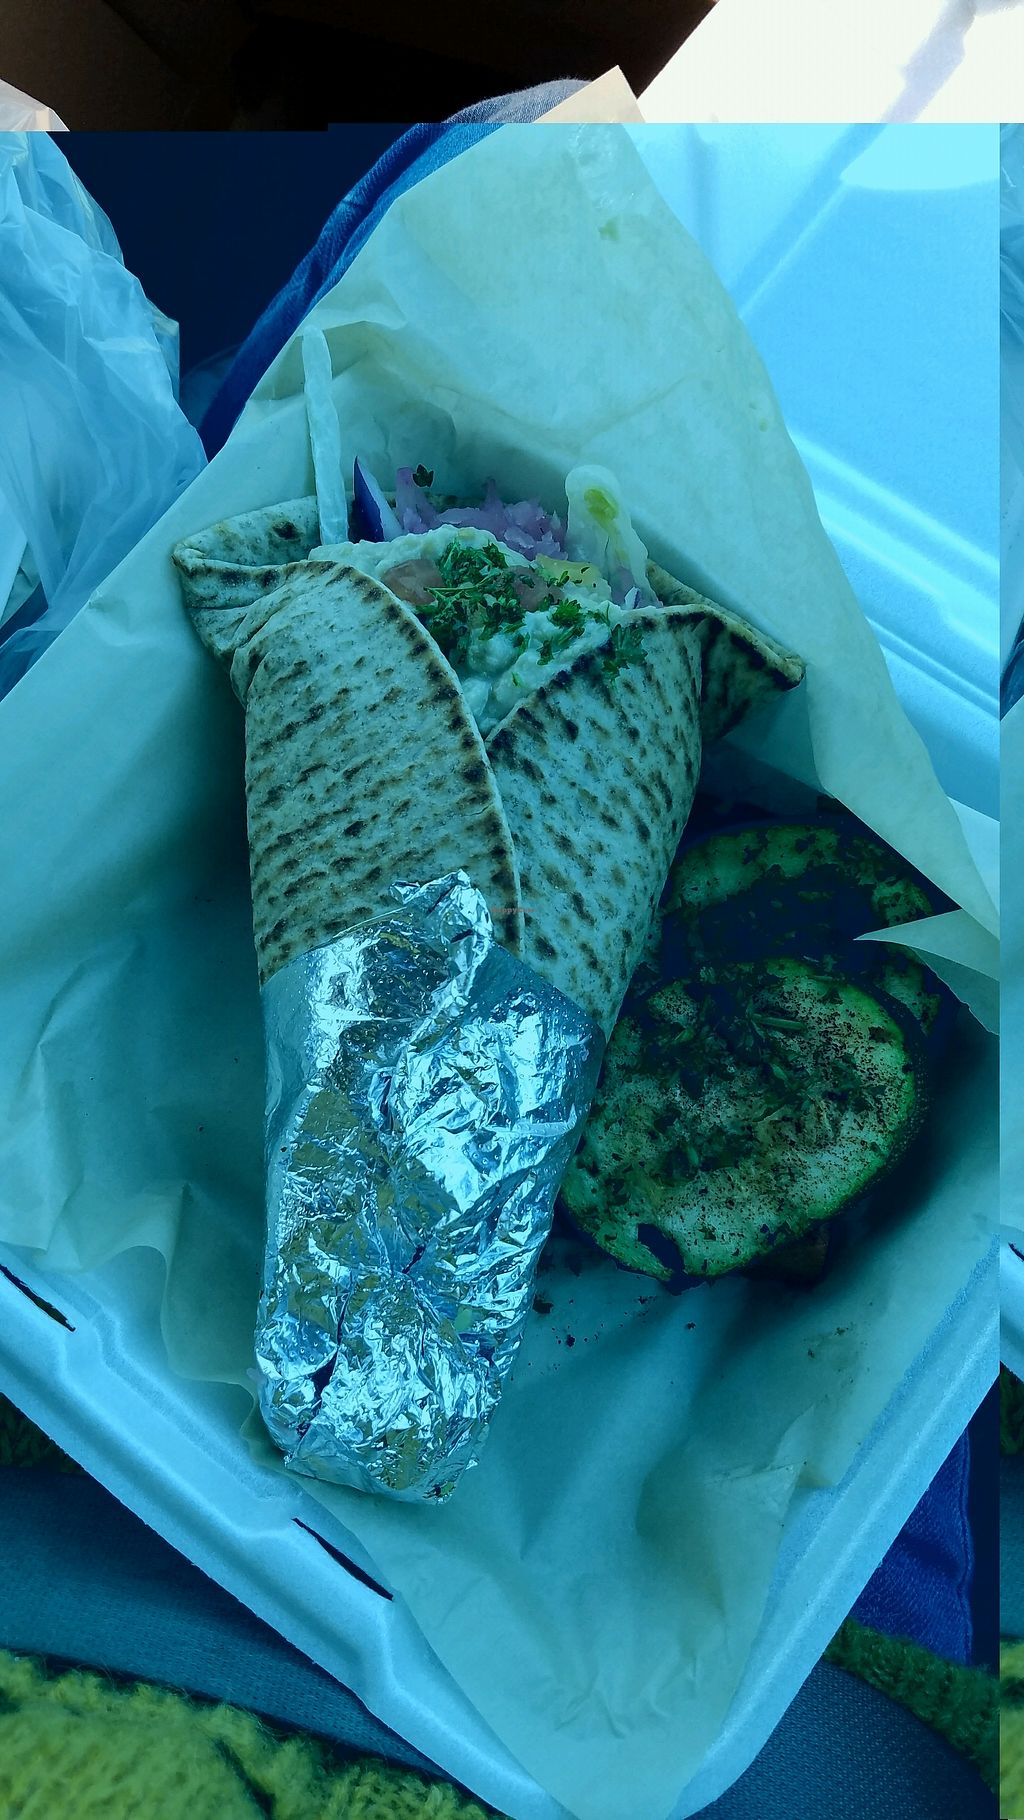 """Photo of Pita Mediterranean Street Food  by <a href=""""/members/profile/rachelgirl8"""">rachelgirl8</a> <br/>veggie wrap with grilled veggies <br/> January 31, 2018  - <a href='/contact/abuse/image/101162/352985'>Report</a>"""